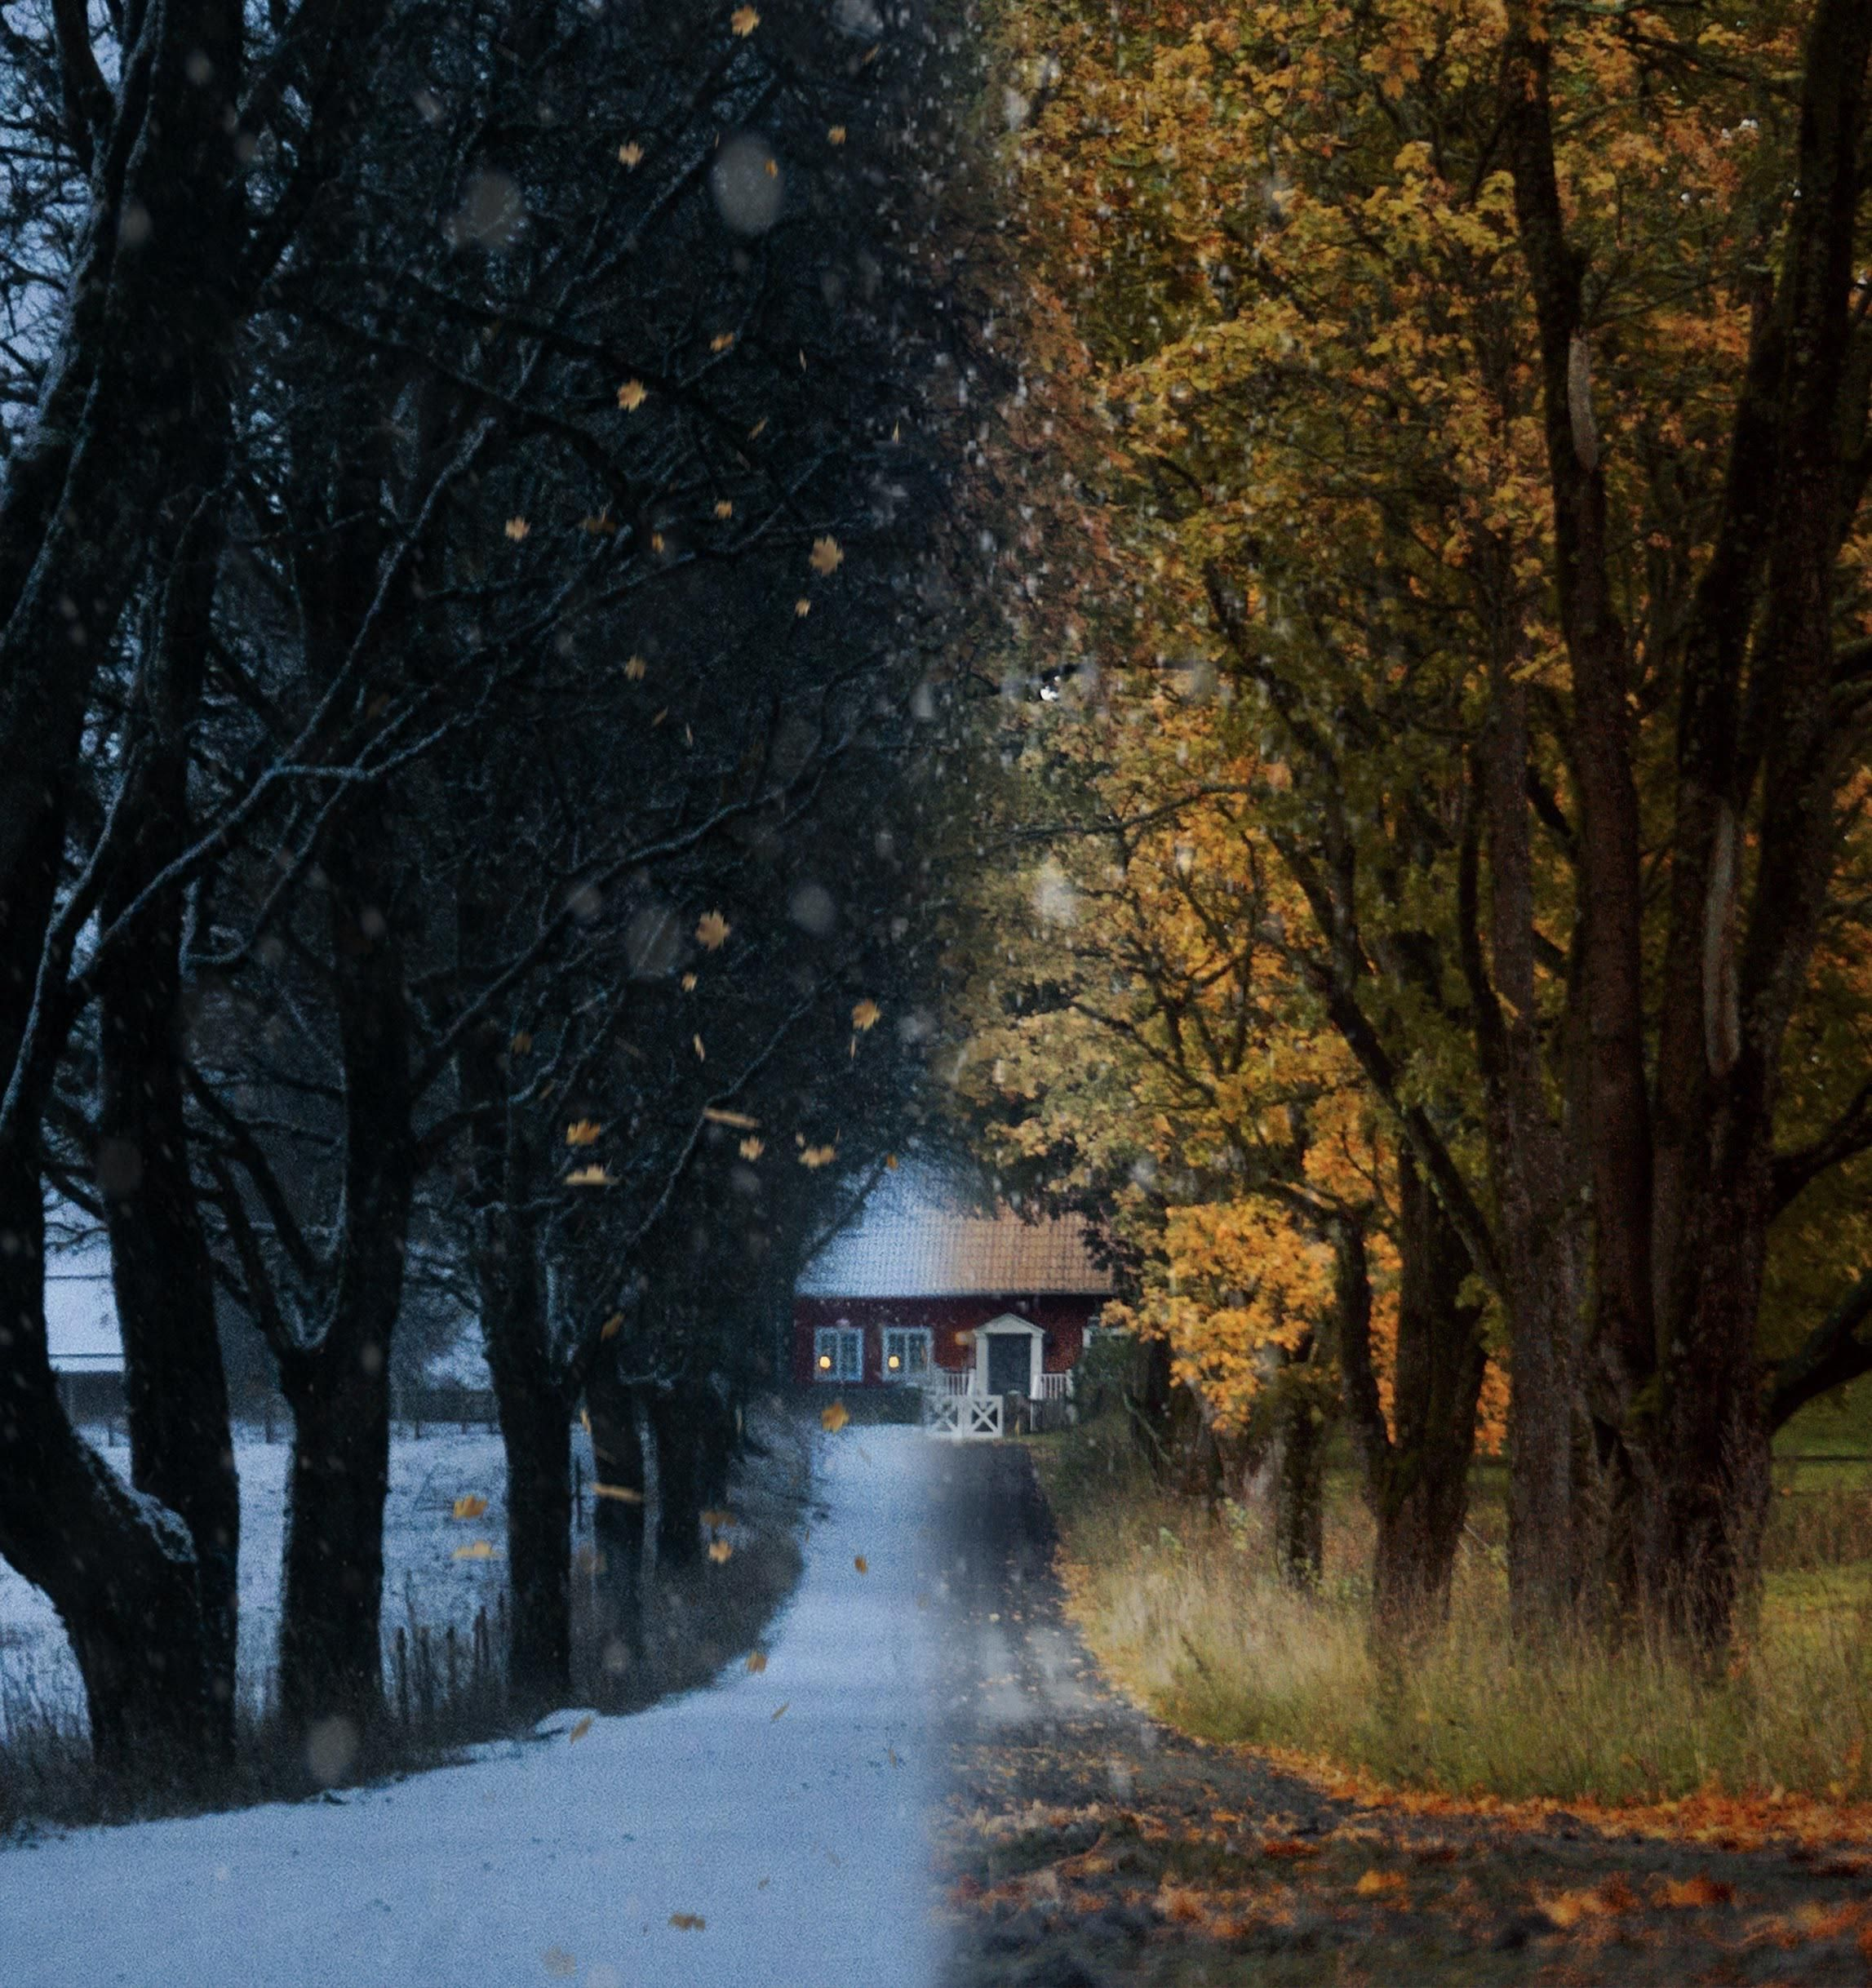 ITAP of a road leading to a house during different seasons.#PHOTO #CAPTURE #NATURE #INCREDIBLE